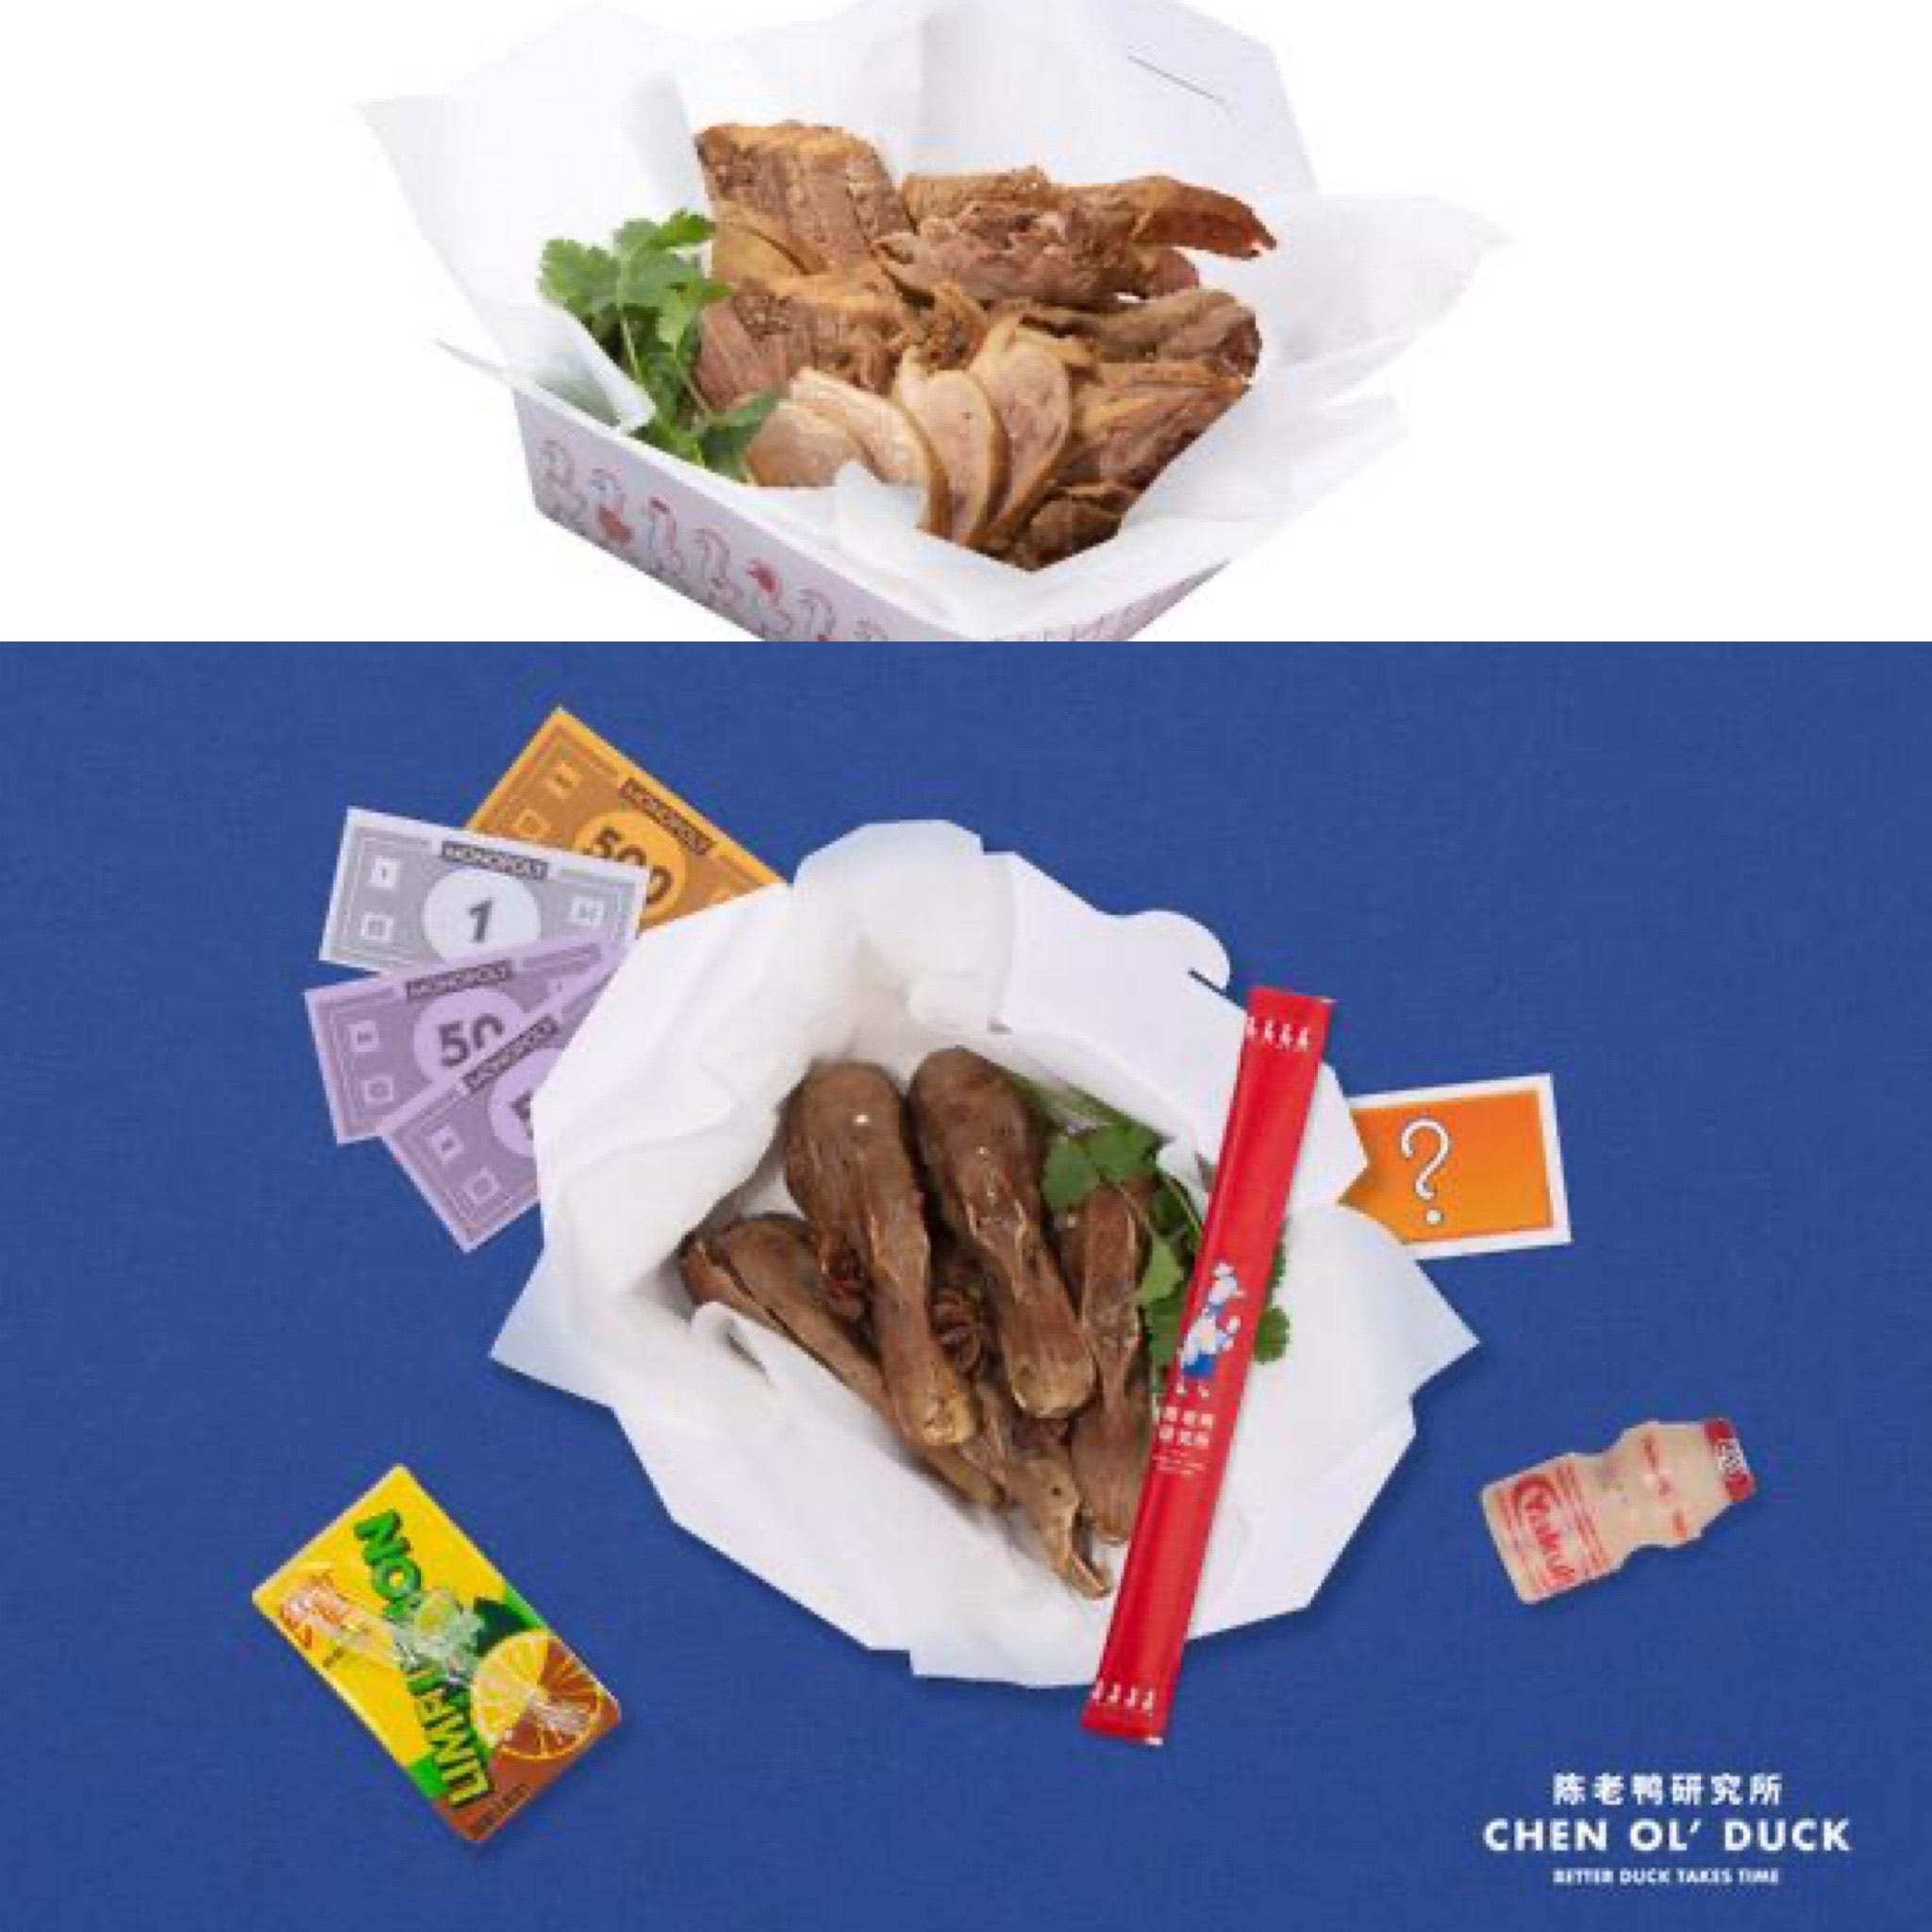 2 $48 Gift Certificate to 陈老鸭研究所 Chen OL' Duck